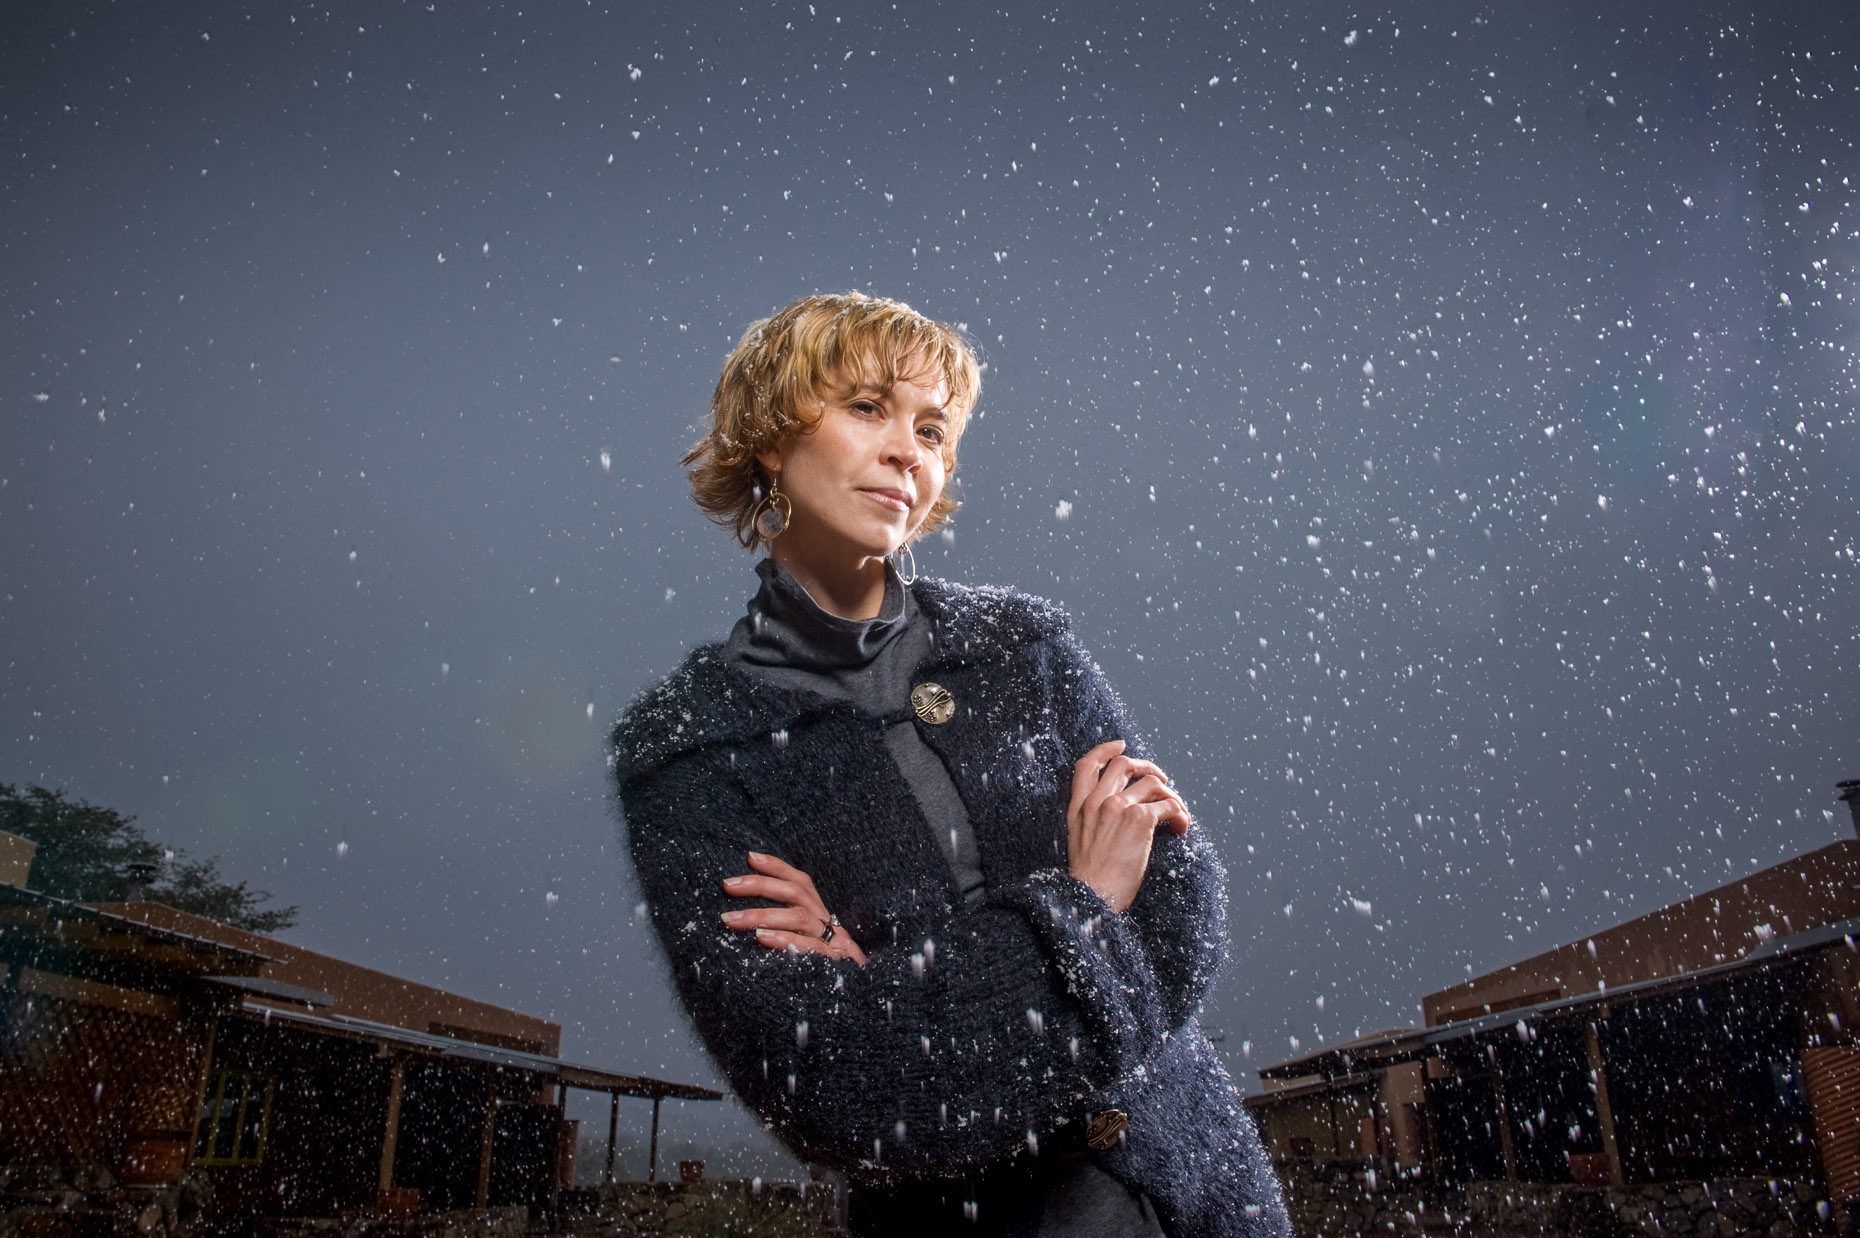 Dramatic fashion portrait of woman in snow